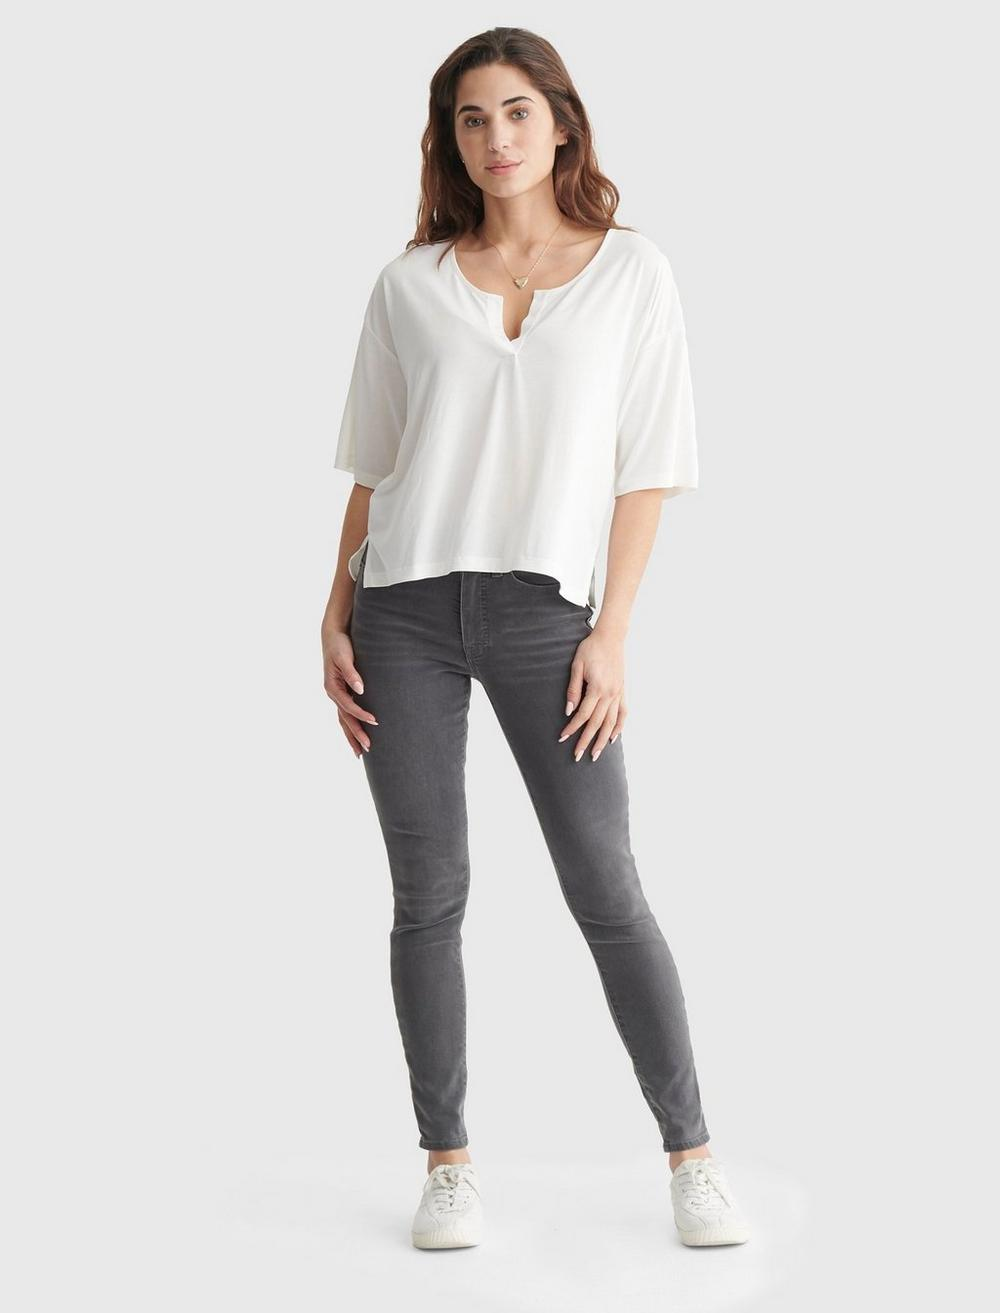 RELAXED-FIT V-NECK KNIT TOP, image 2